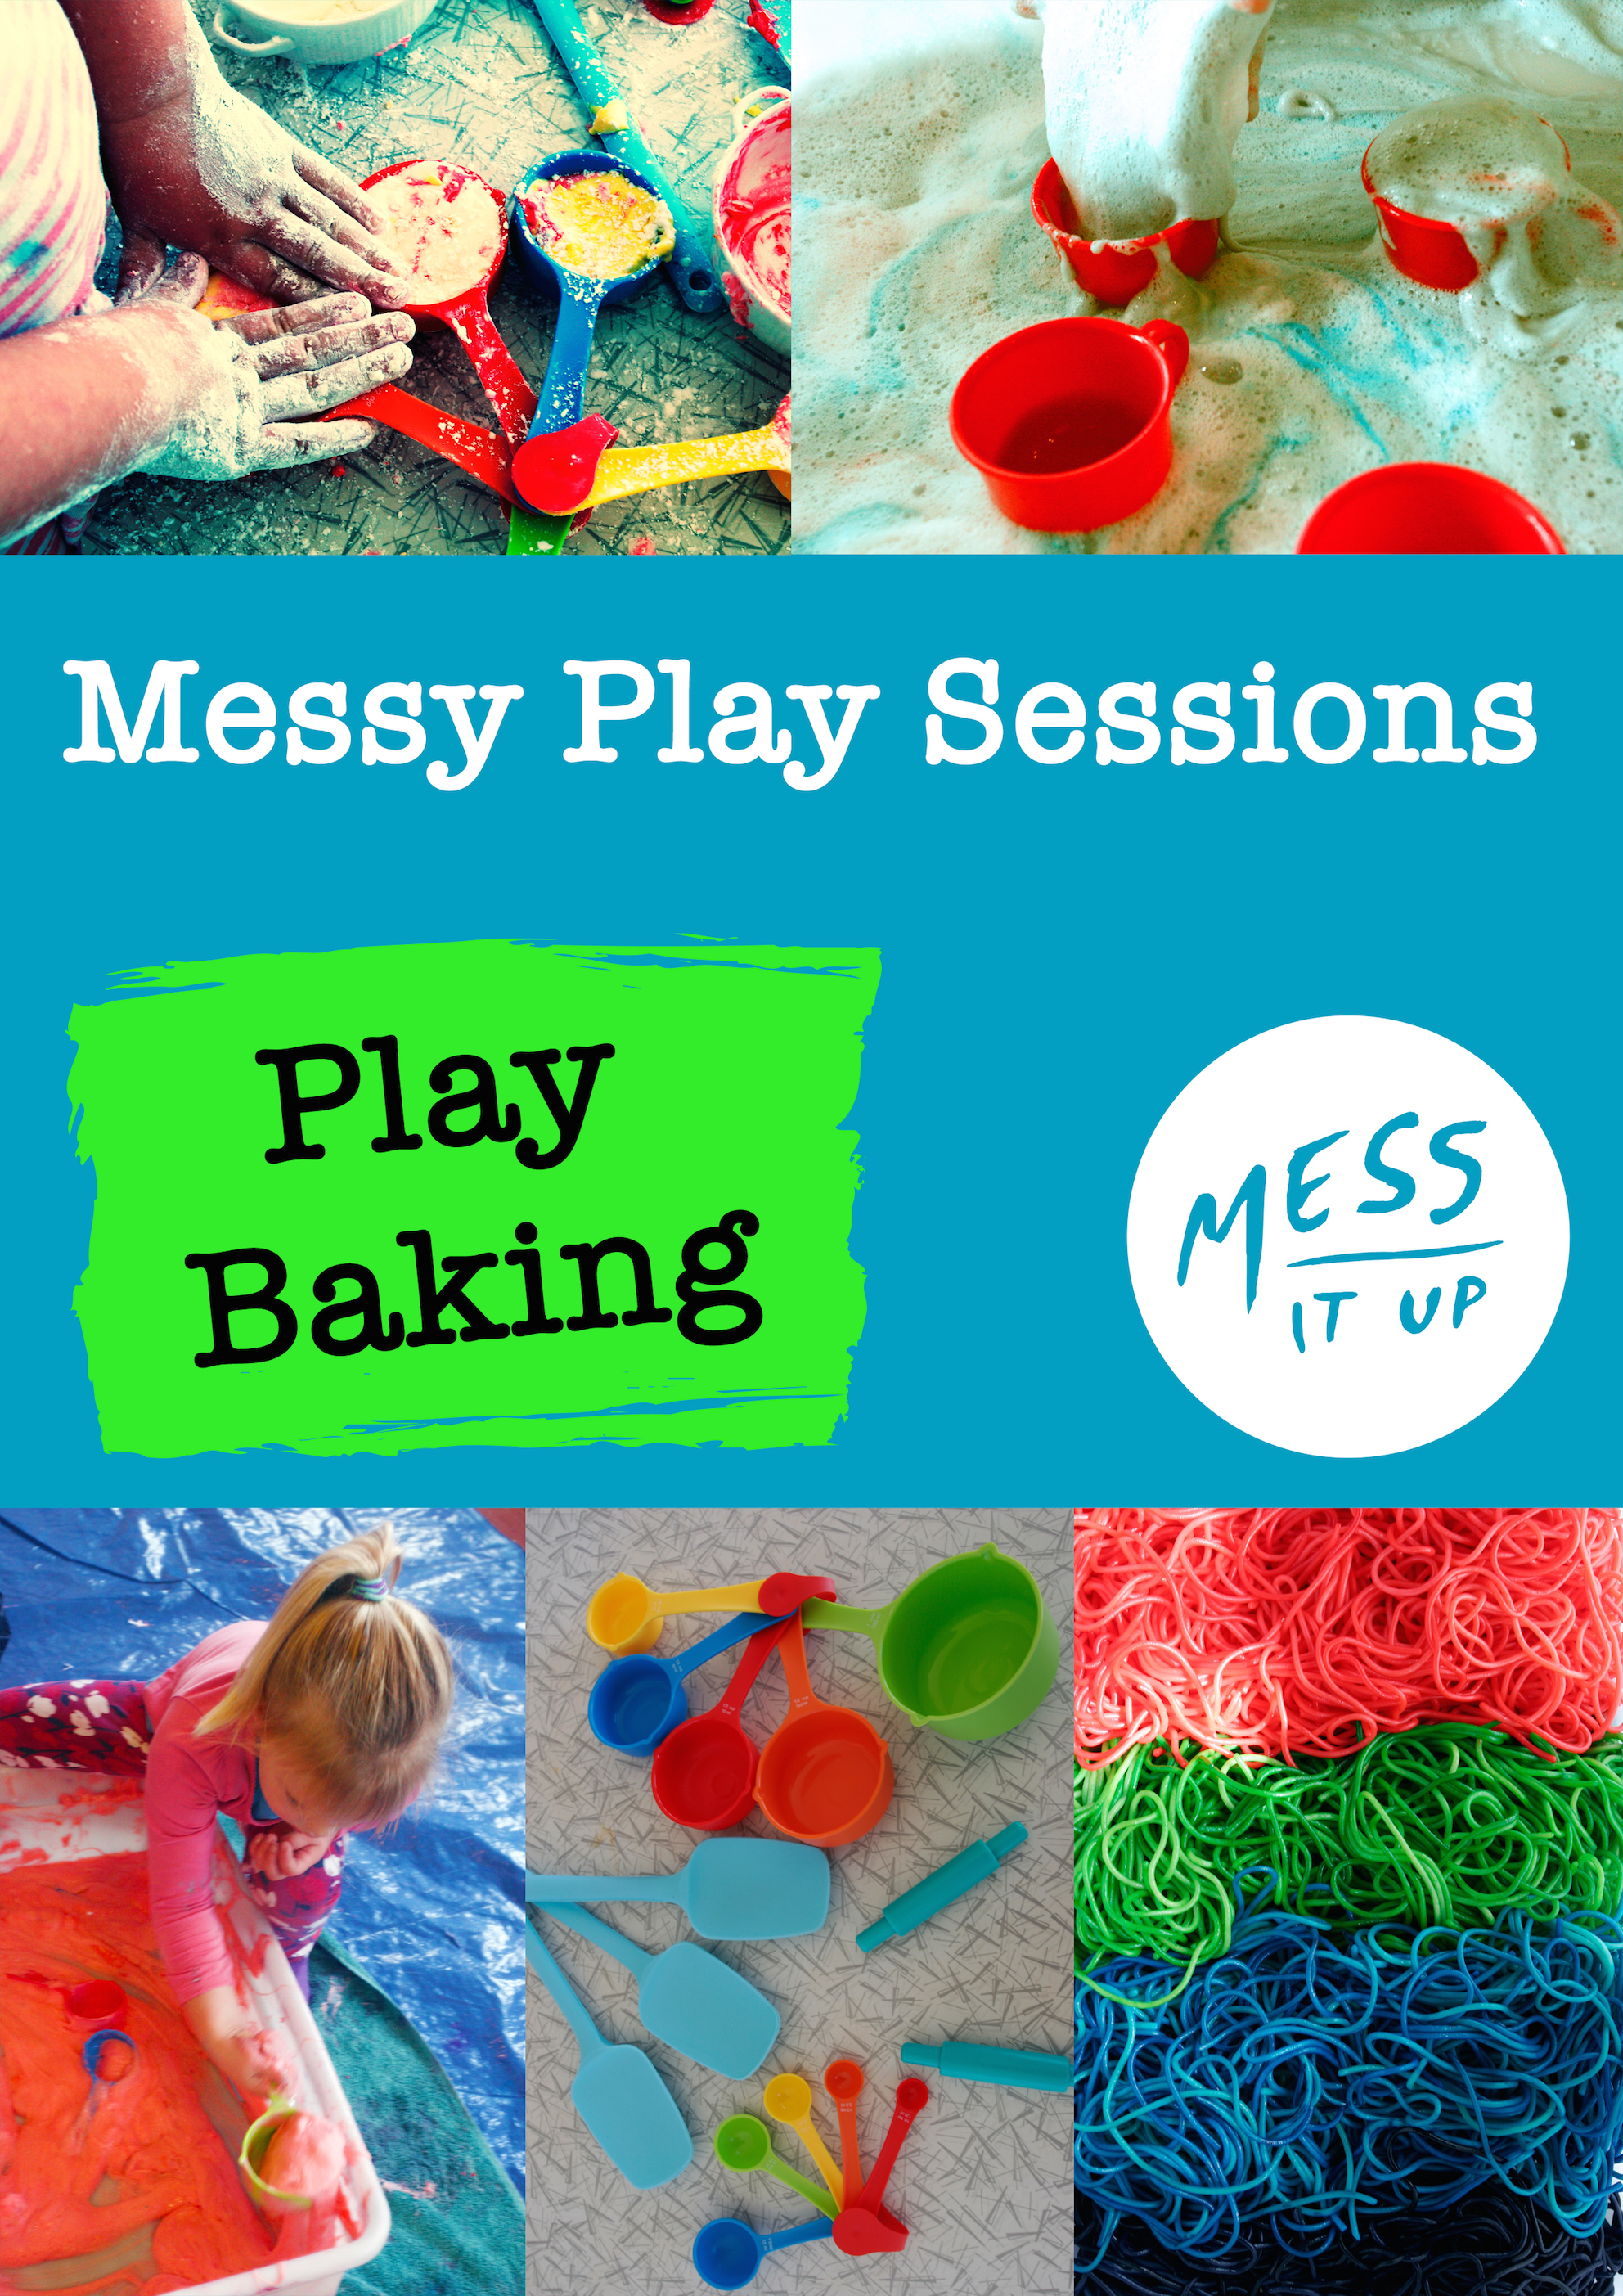 Who doesn't love to get messy with baking